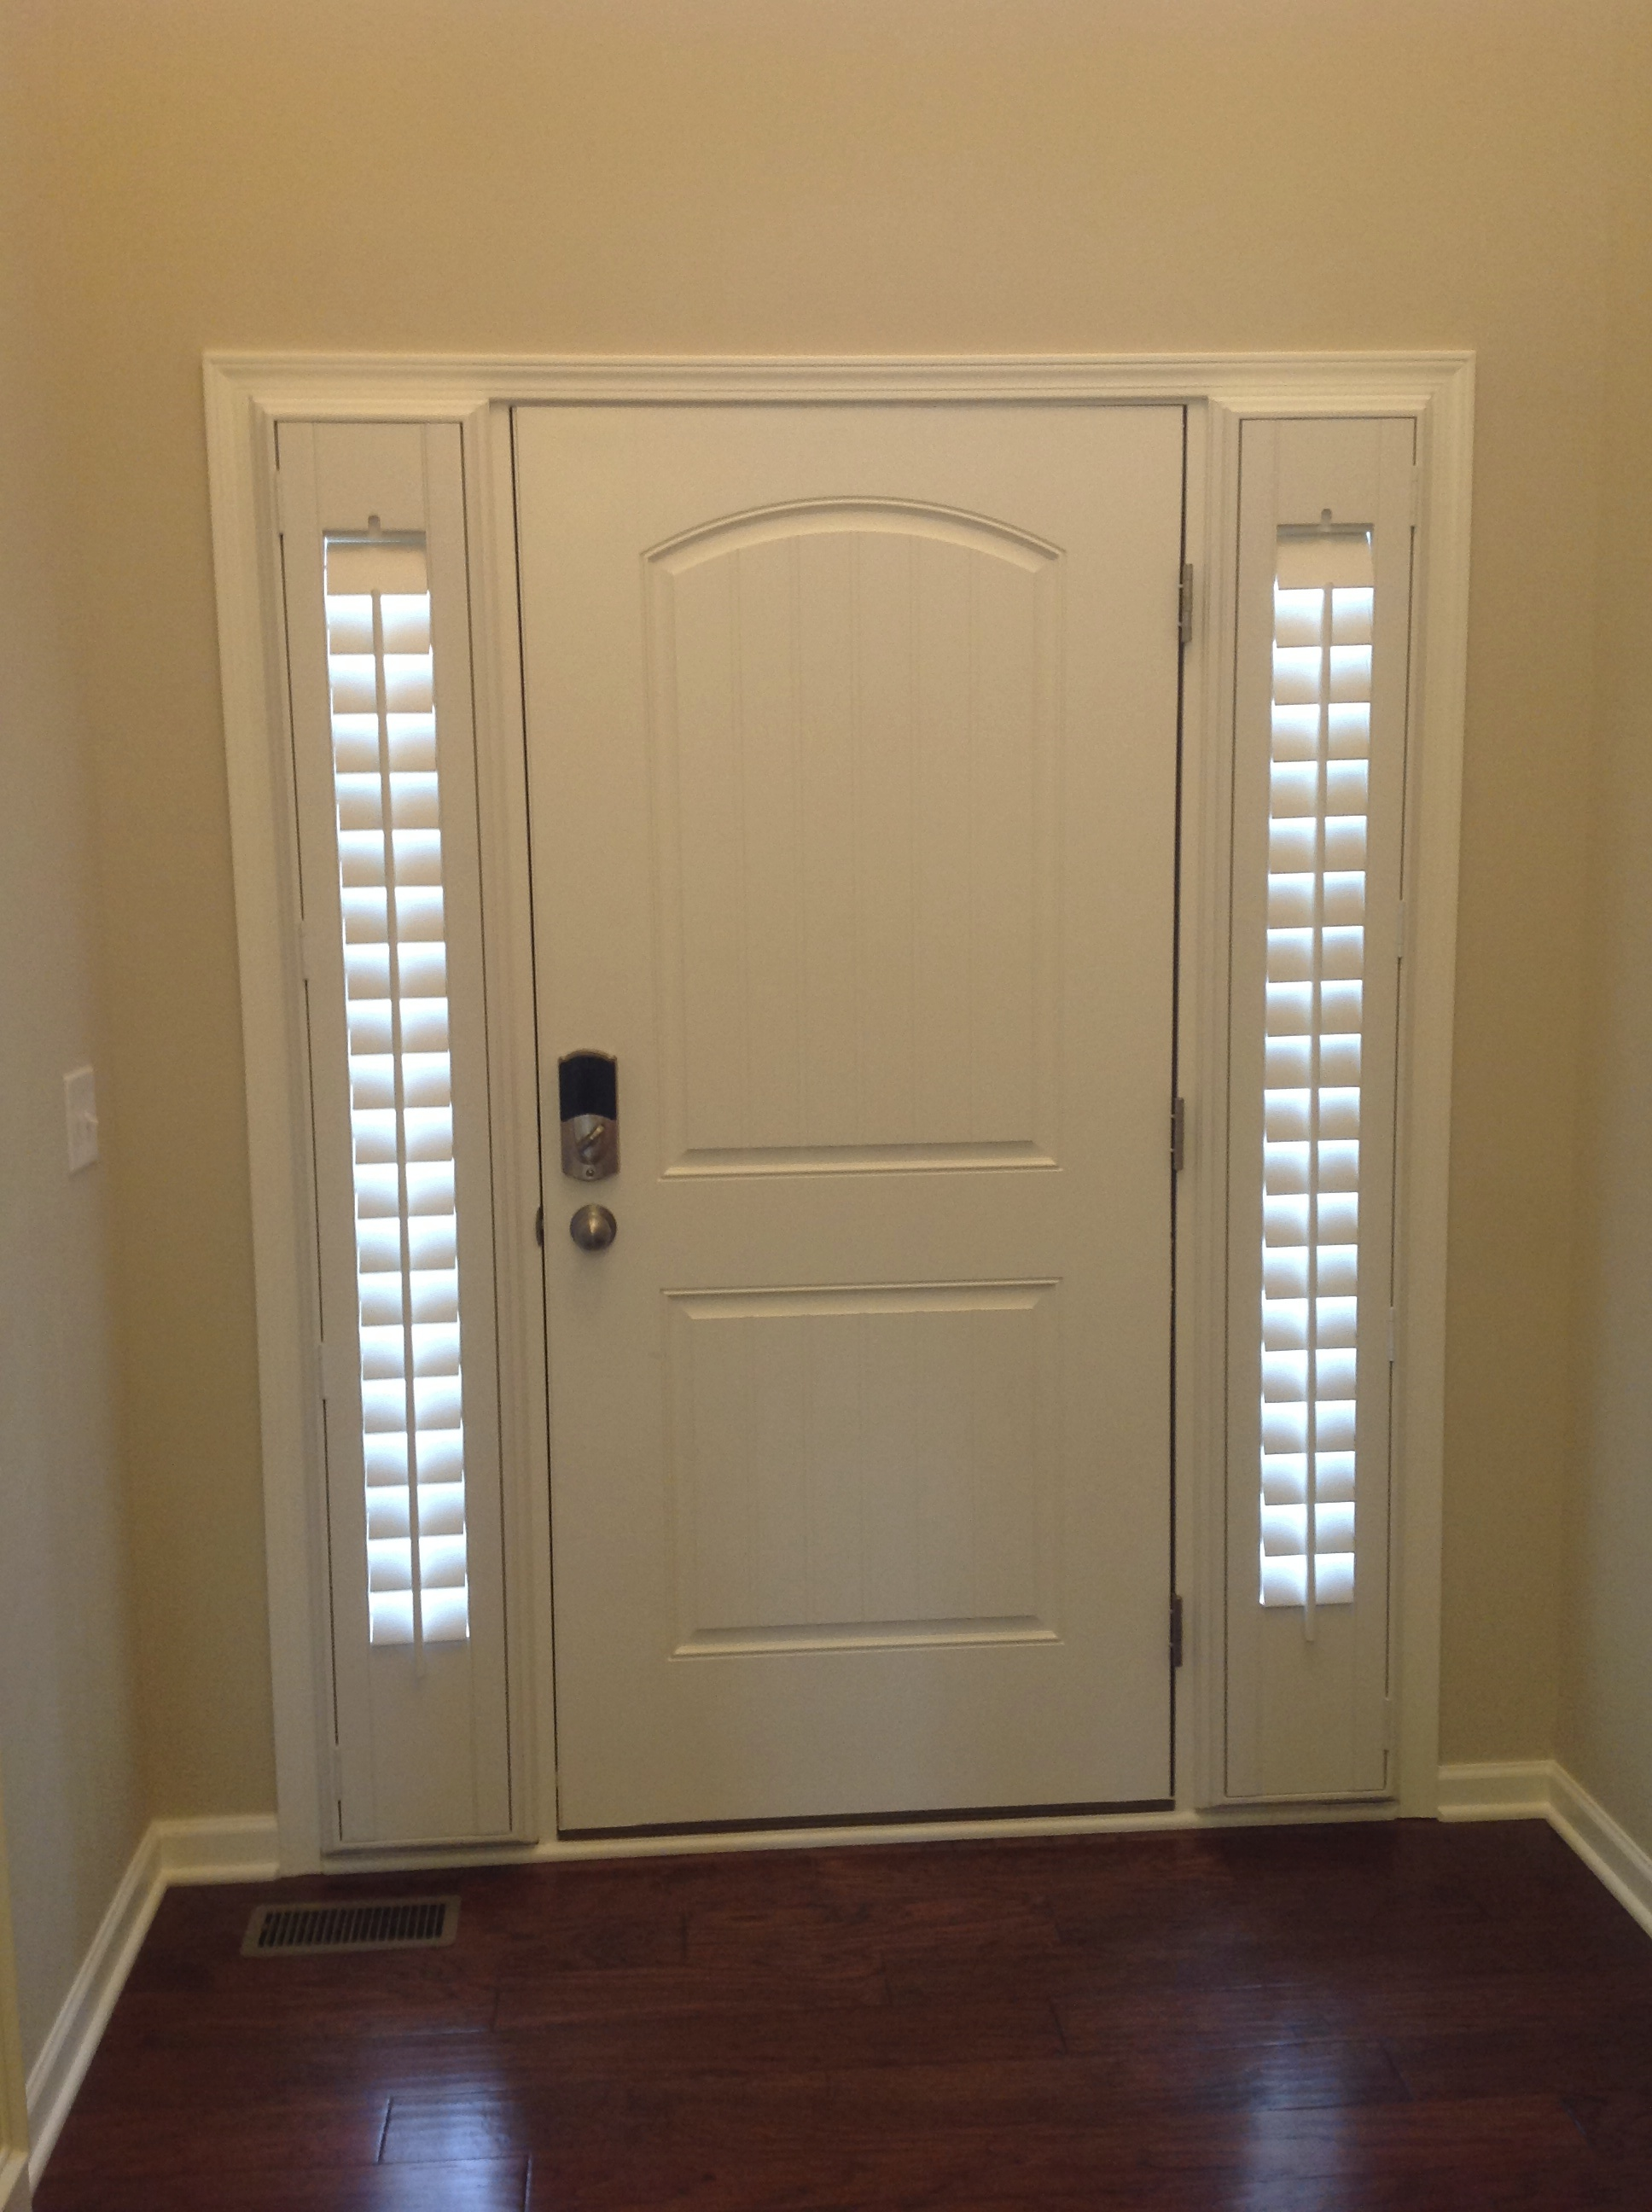 front door blinds. Exellent Blinds Shutters On The Entry Sidelights And Front Doors And Front Door Blinds R